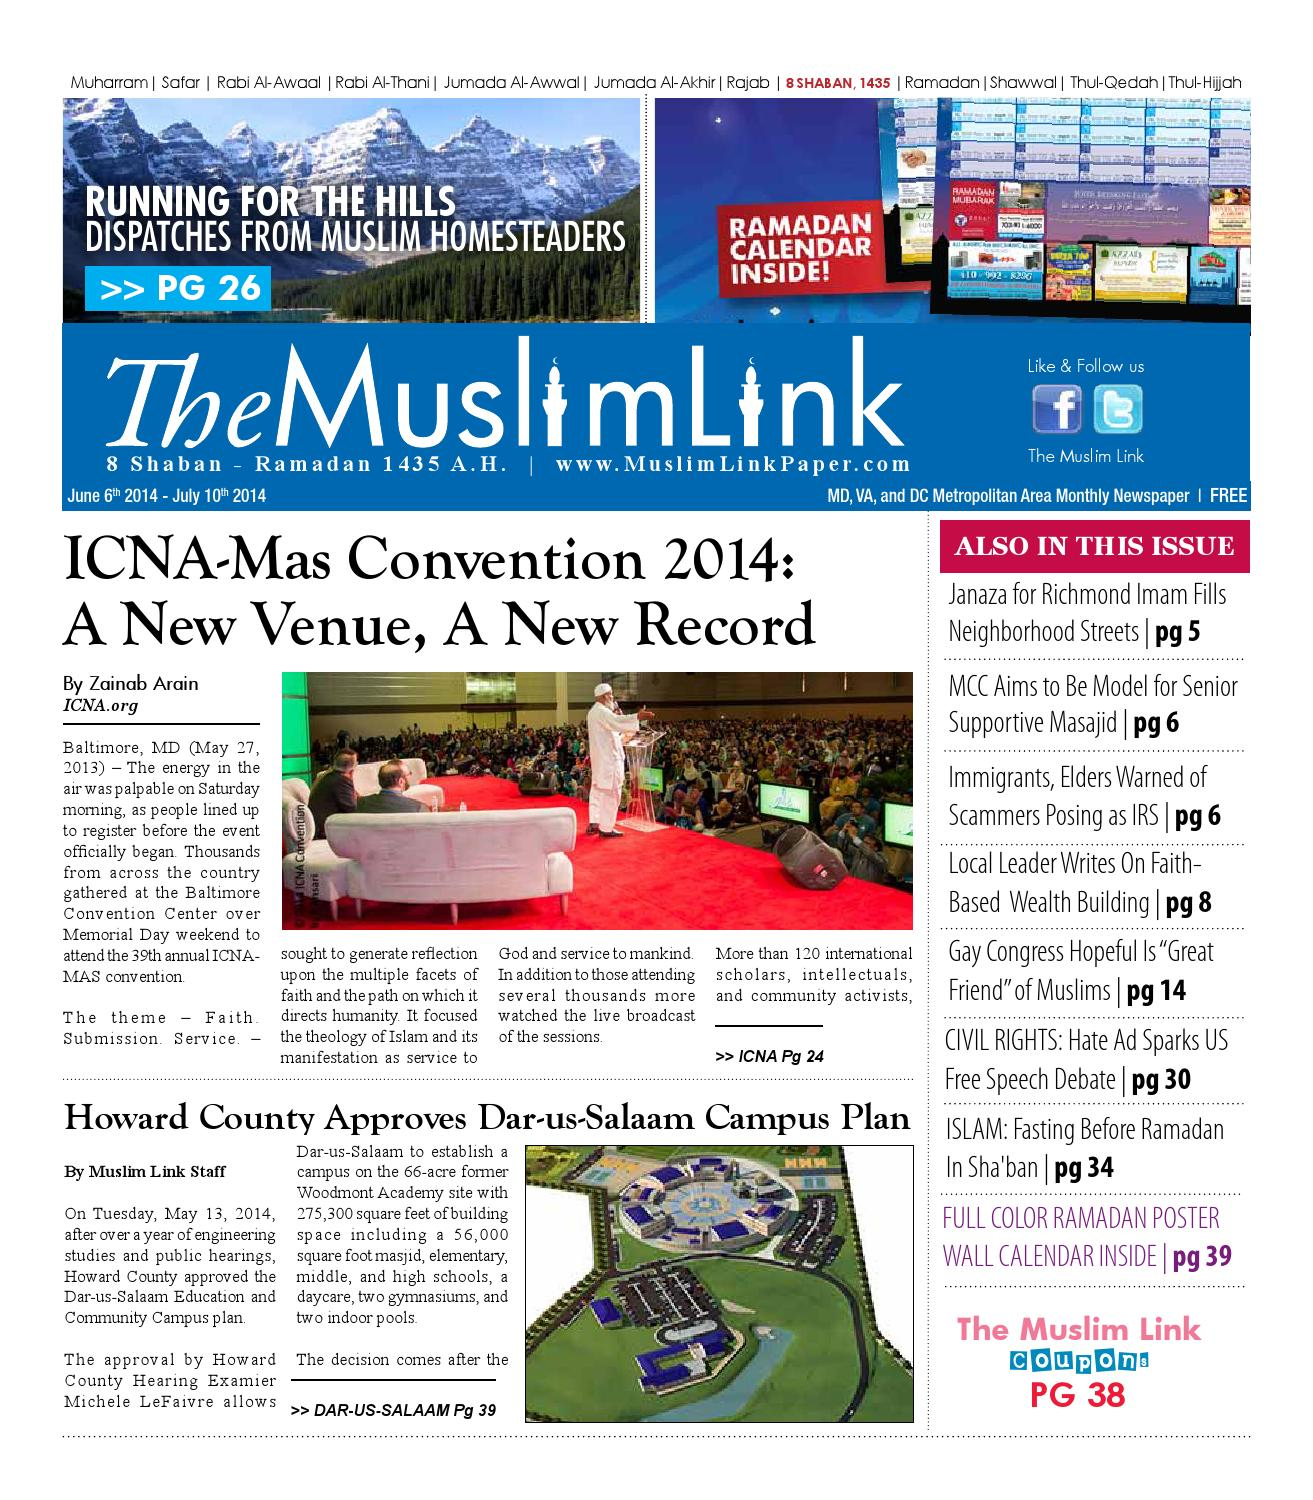 north baltimore muslim Frequently asked questions where is whyislam / icna-nj located what is the cut-off date for age in quiz when is the muslim day at six flags any youth activities.